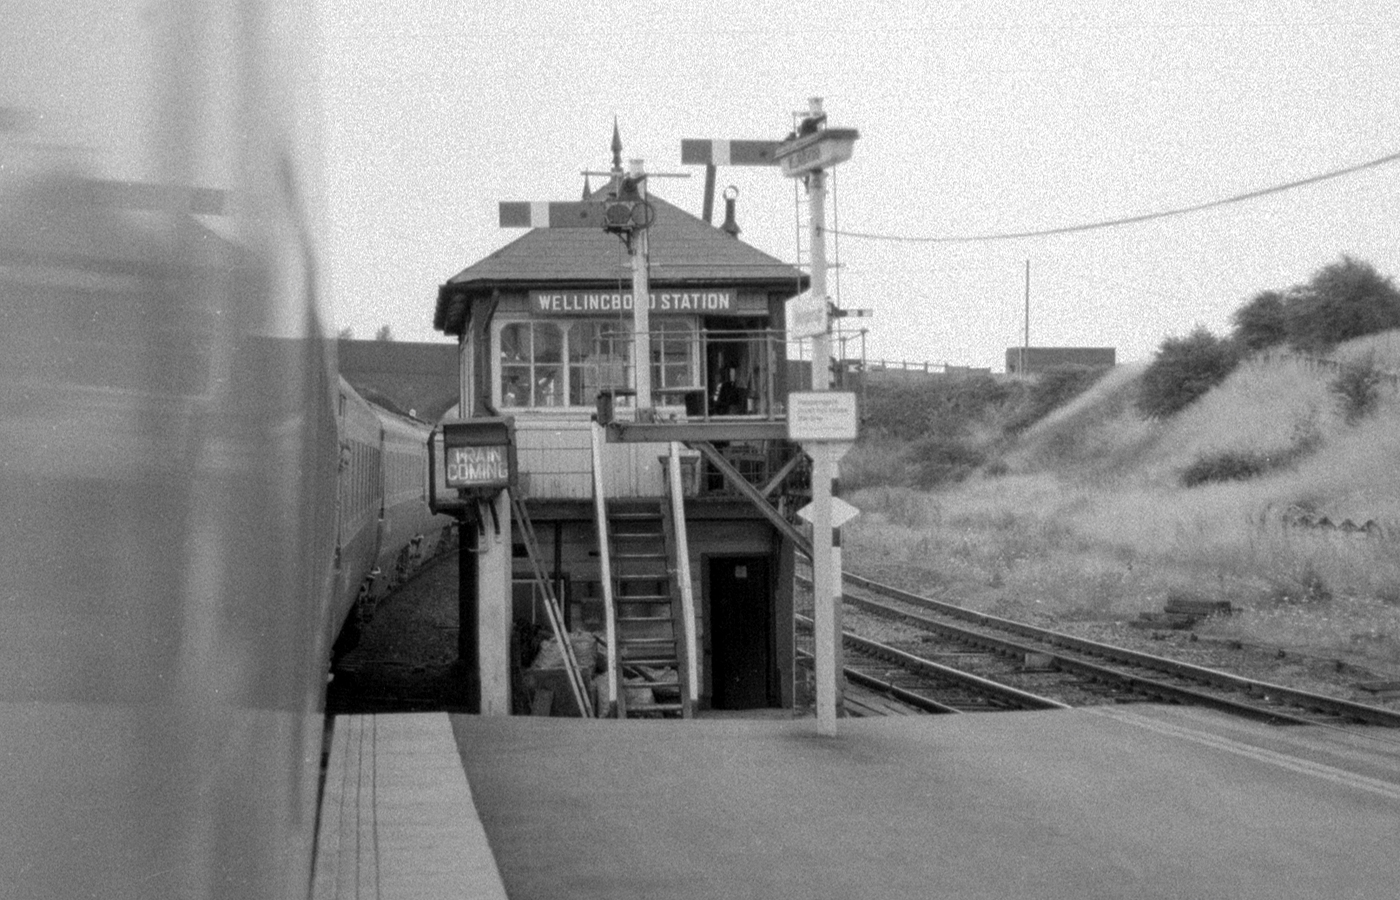 Wellingborough Station signal box